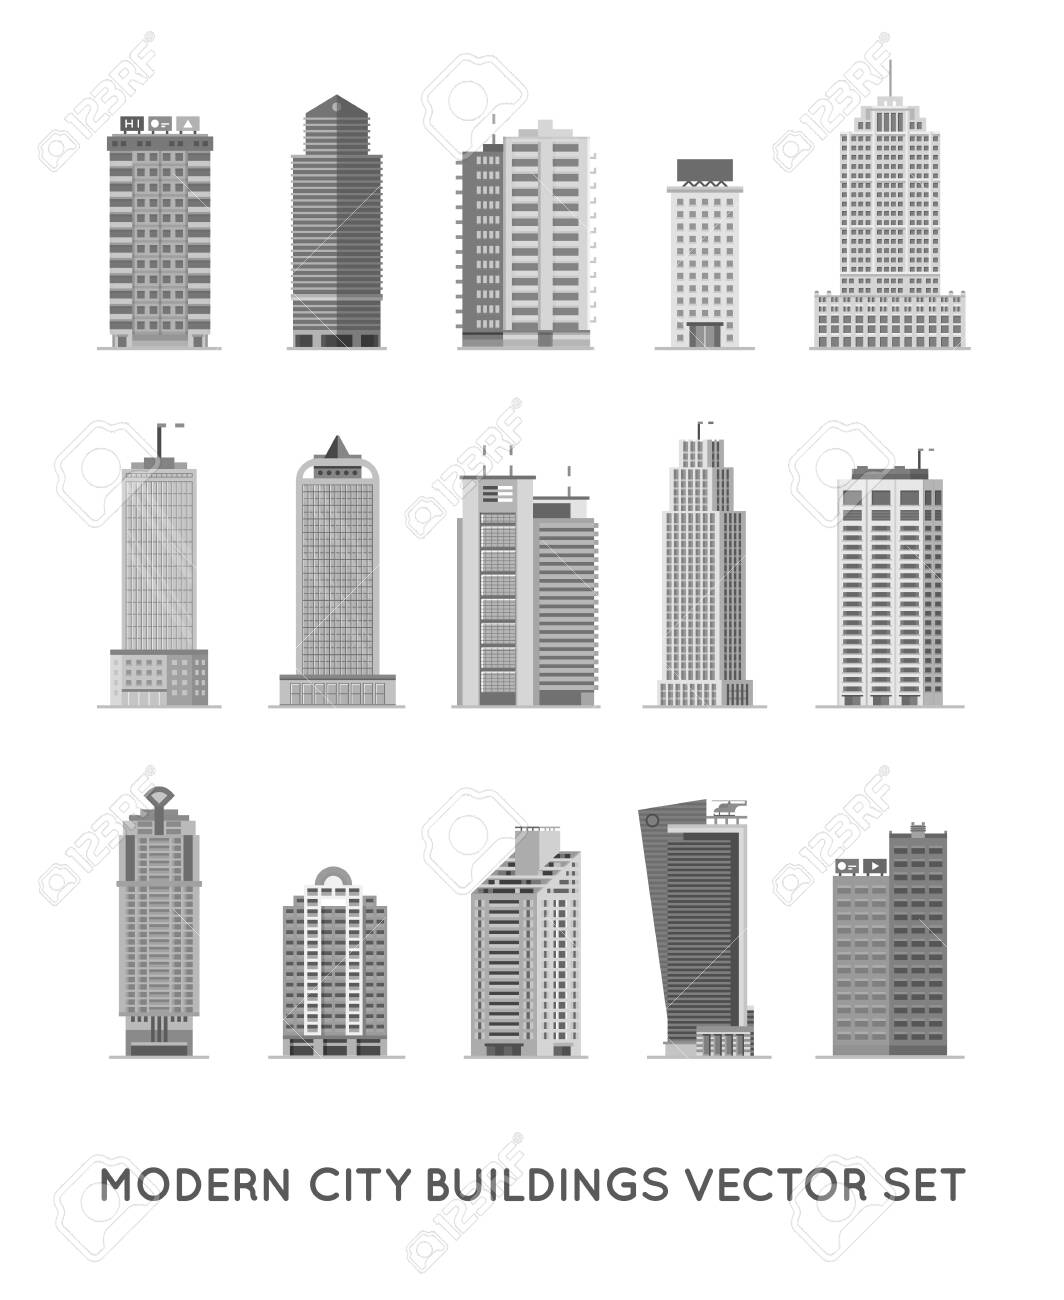 Modern City Buildings and Houses. Flat Vector Icons Set. - 149236625